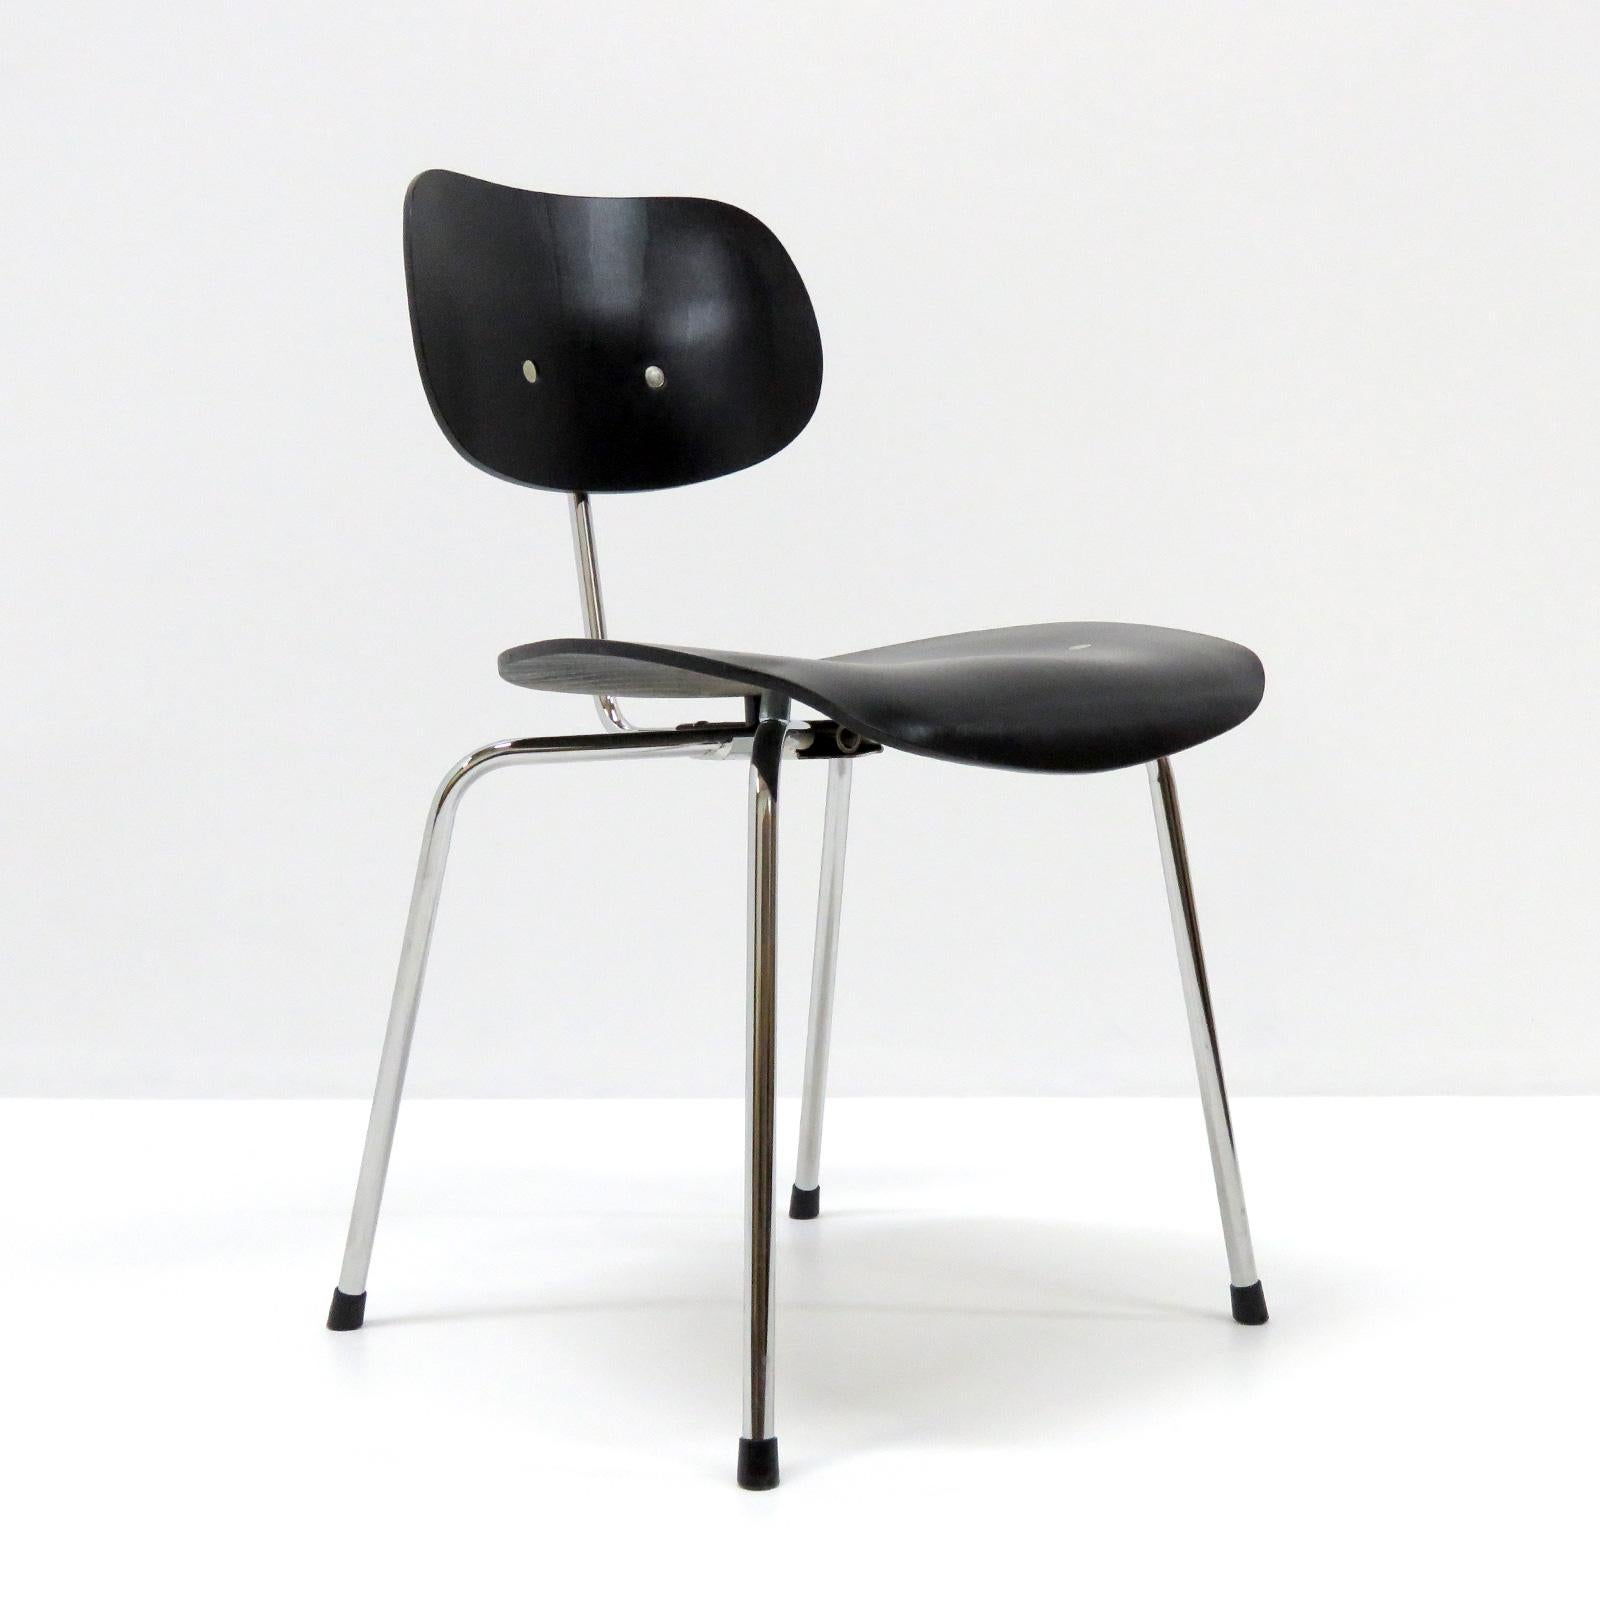 Egon Eiermann Dining Chairs By Egon Eiermann For Wilde Spieth